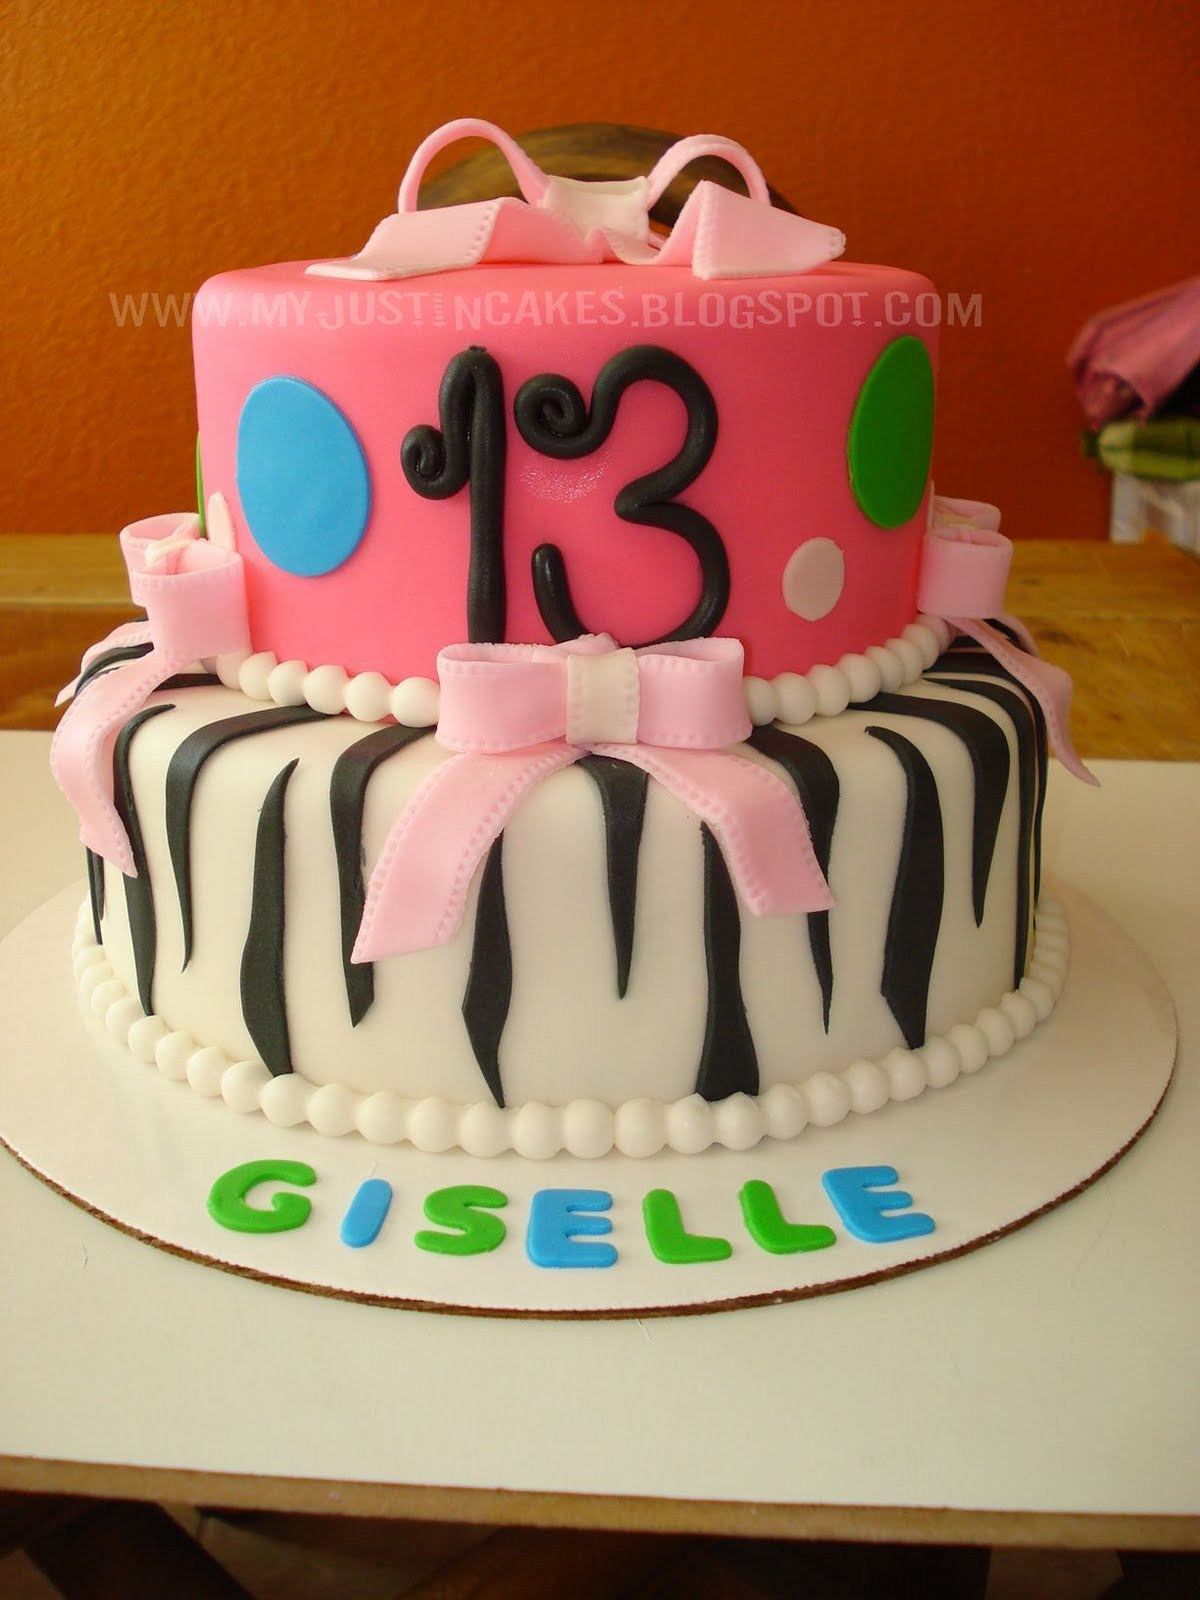 13 Years Old Birthday Cake  Just in Cakes 13 Year Old Girl Birthday Cake